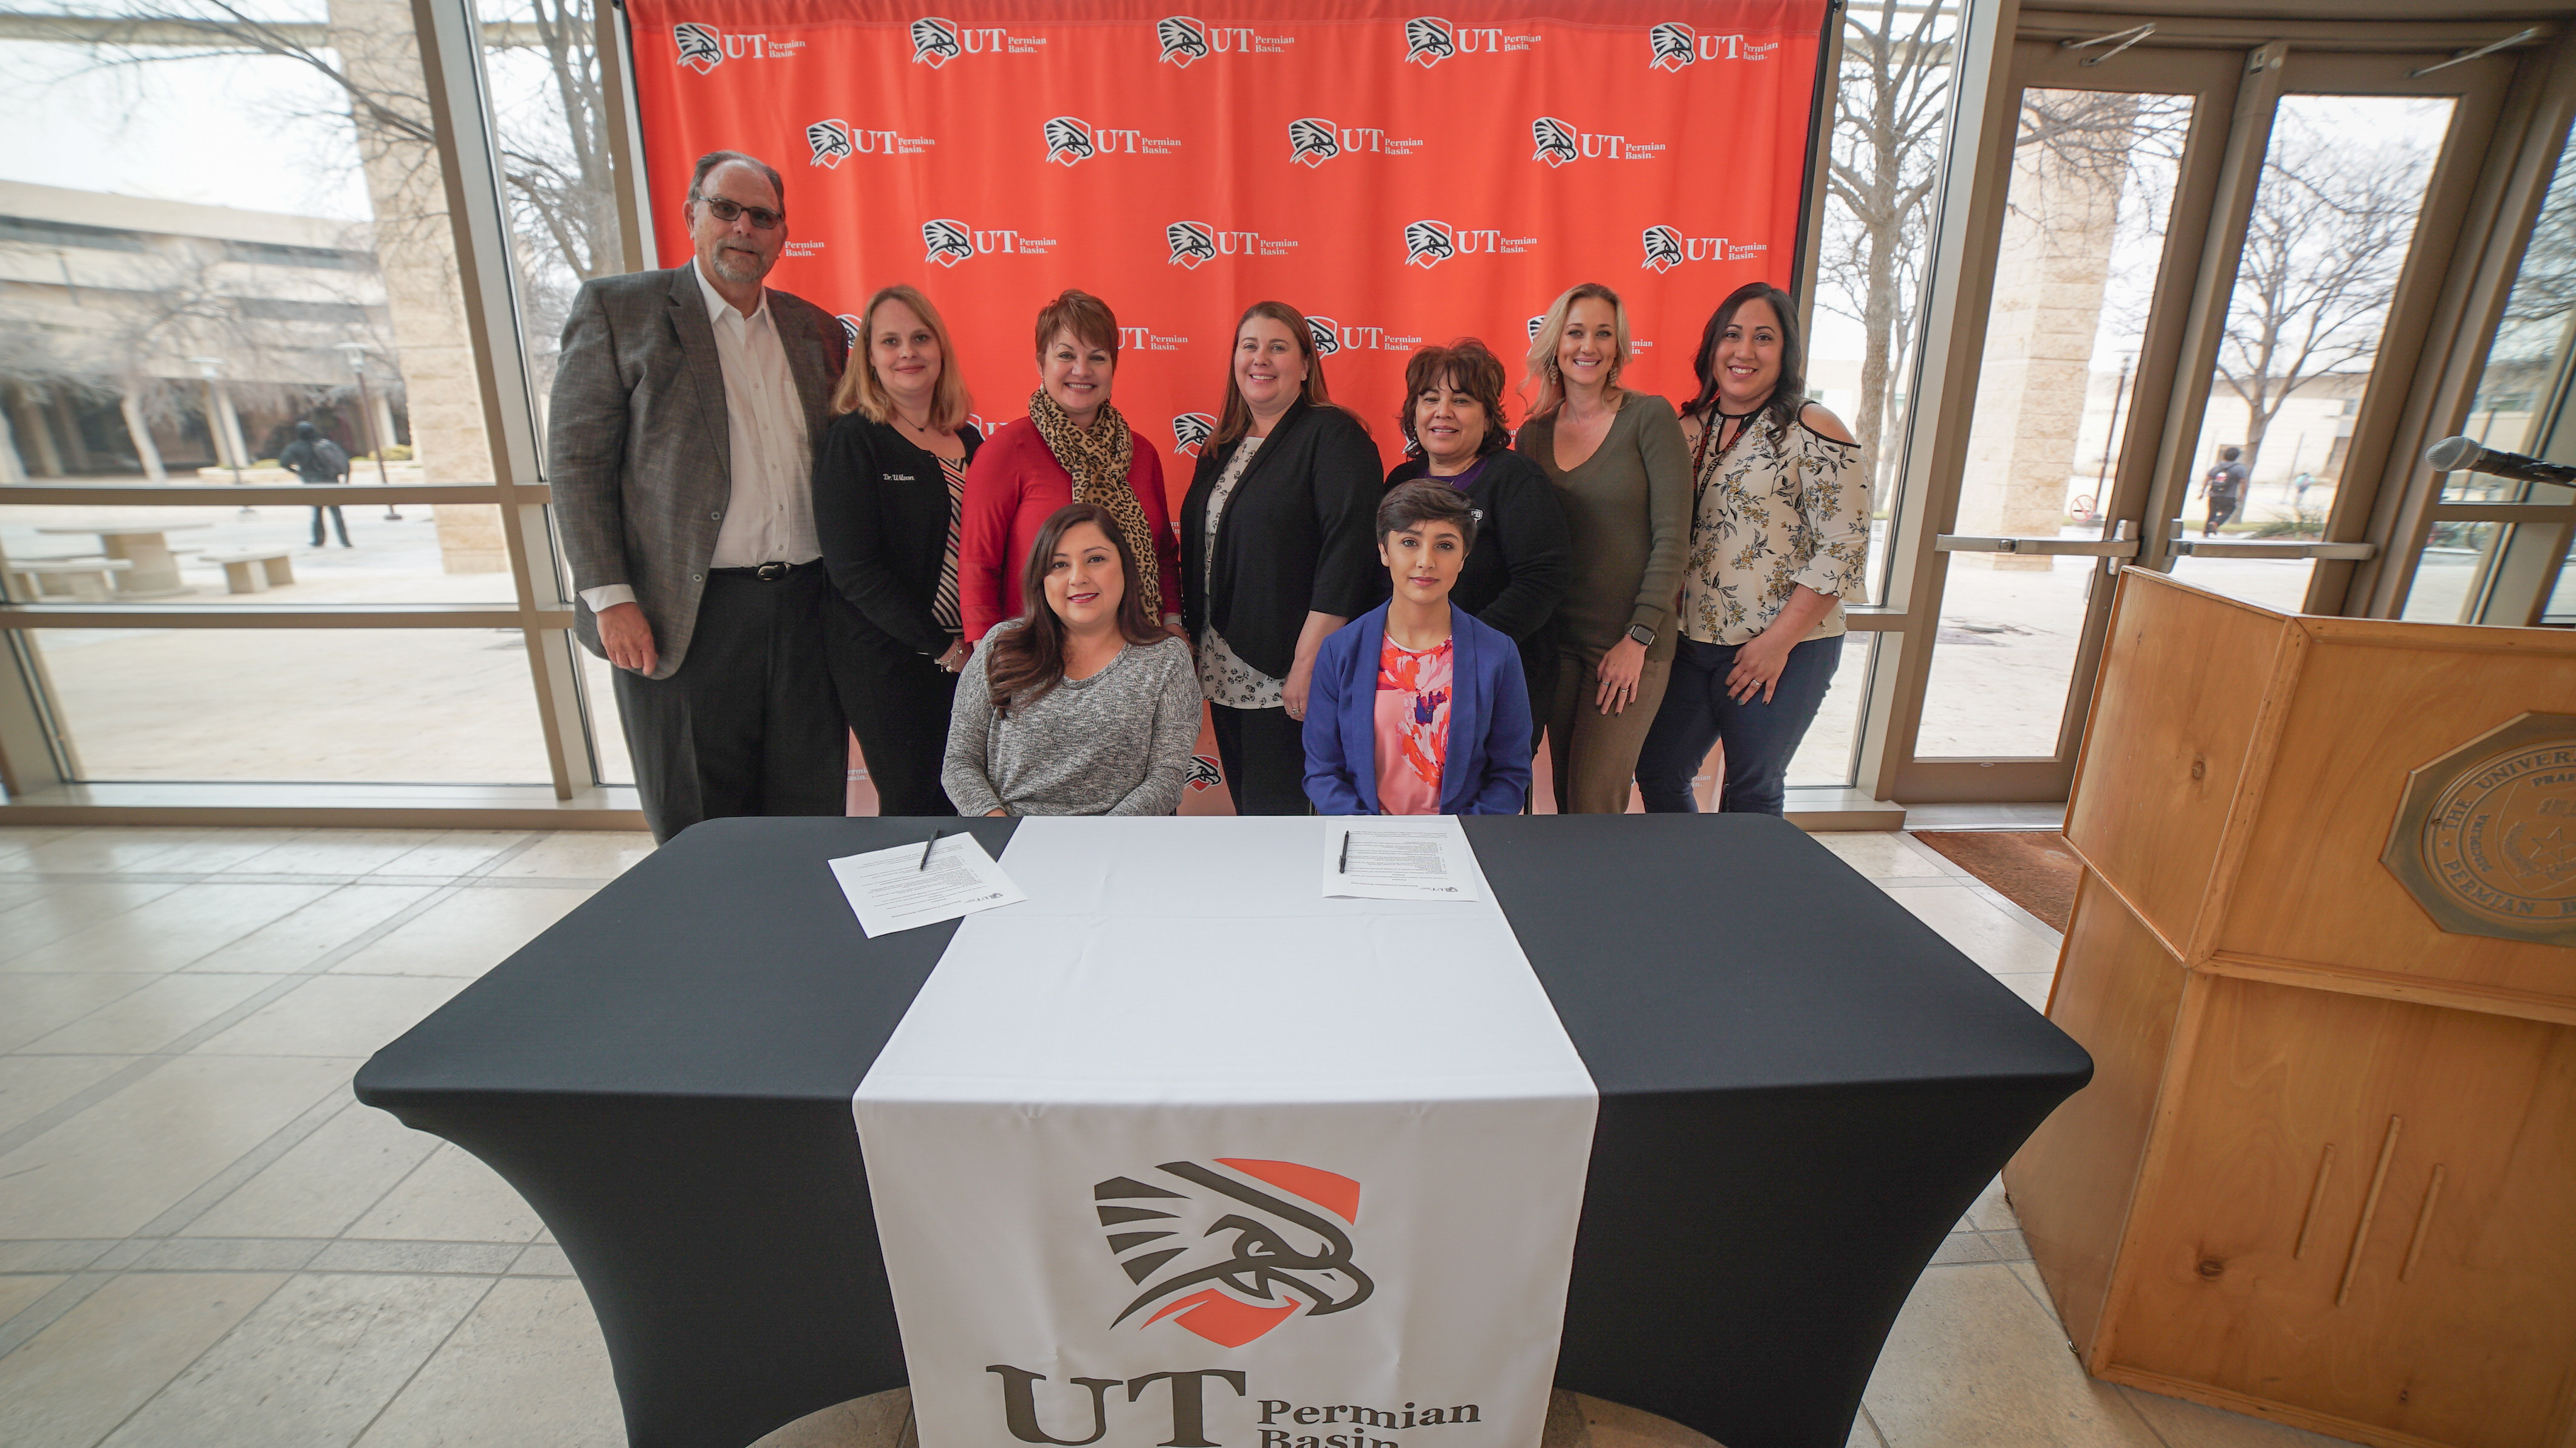 UTPB and education foundation representatives